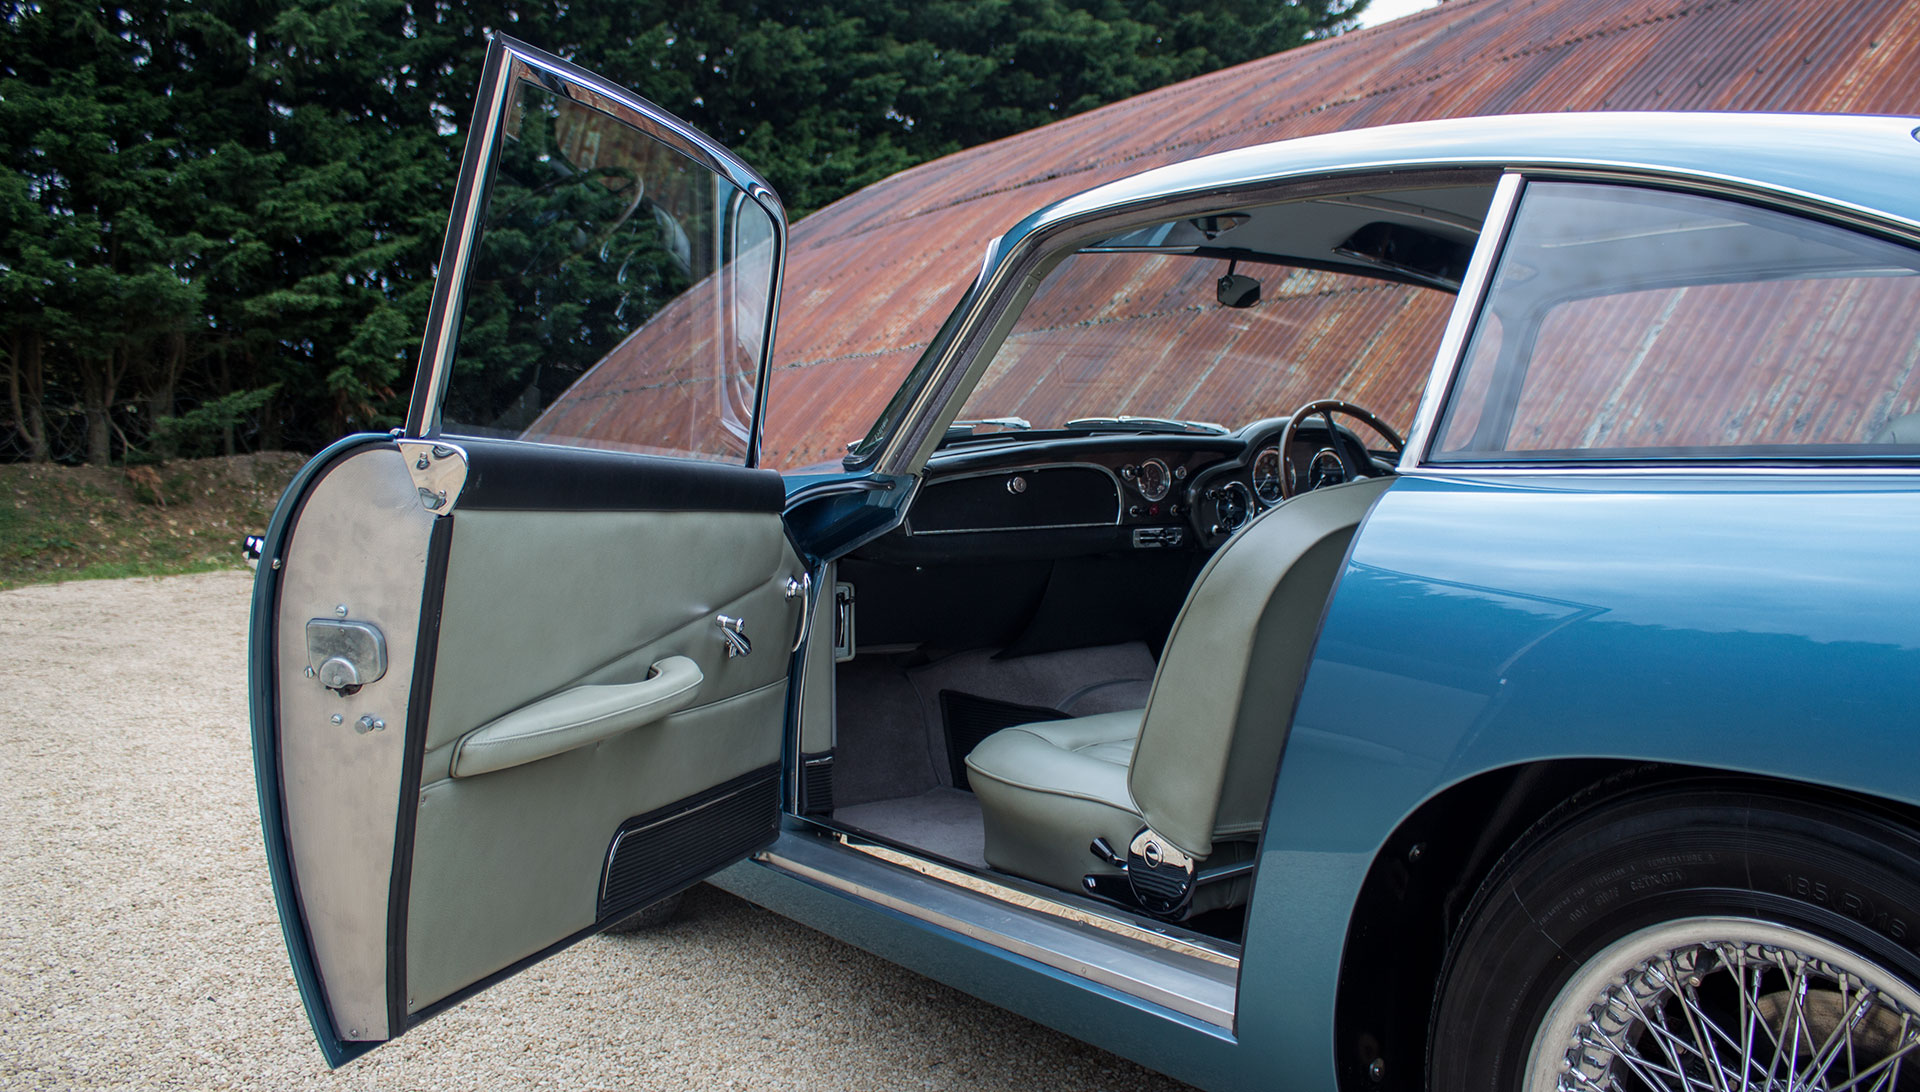 1960 Aston Martin DB4 Series 2 For Sale at The Classic Motor Hub